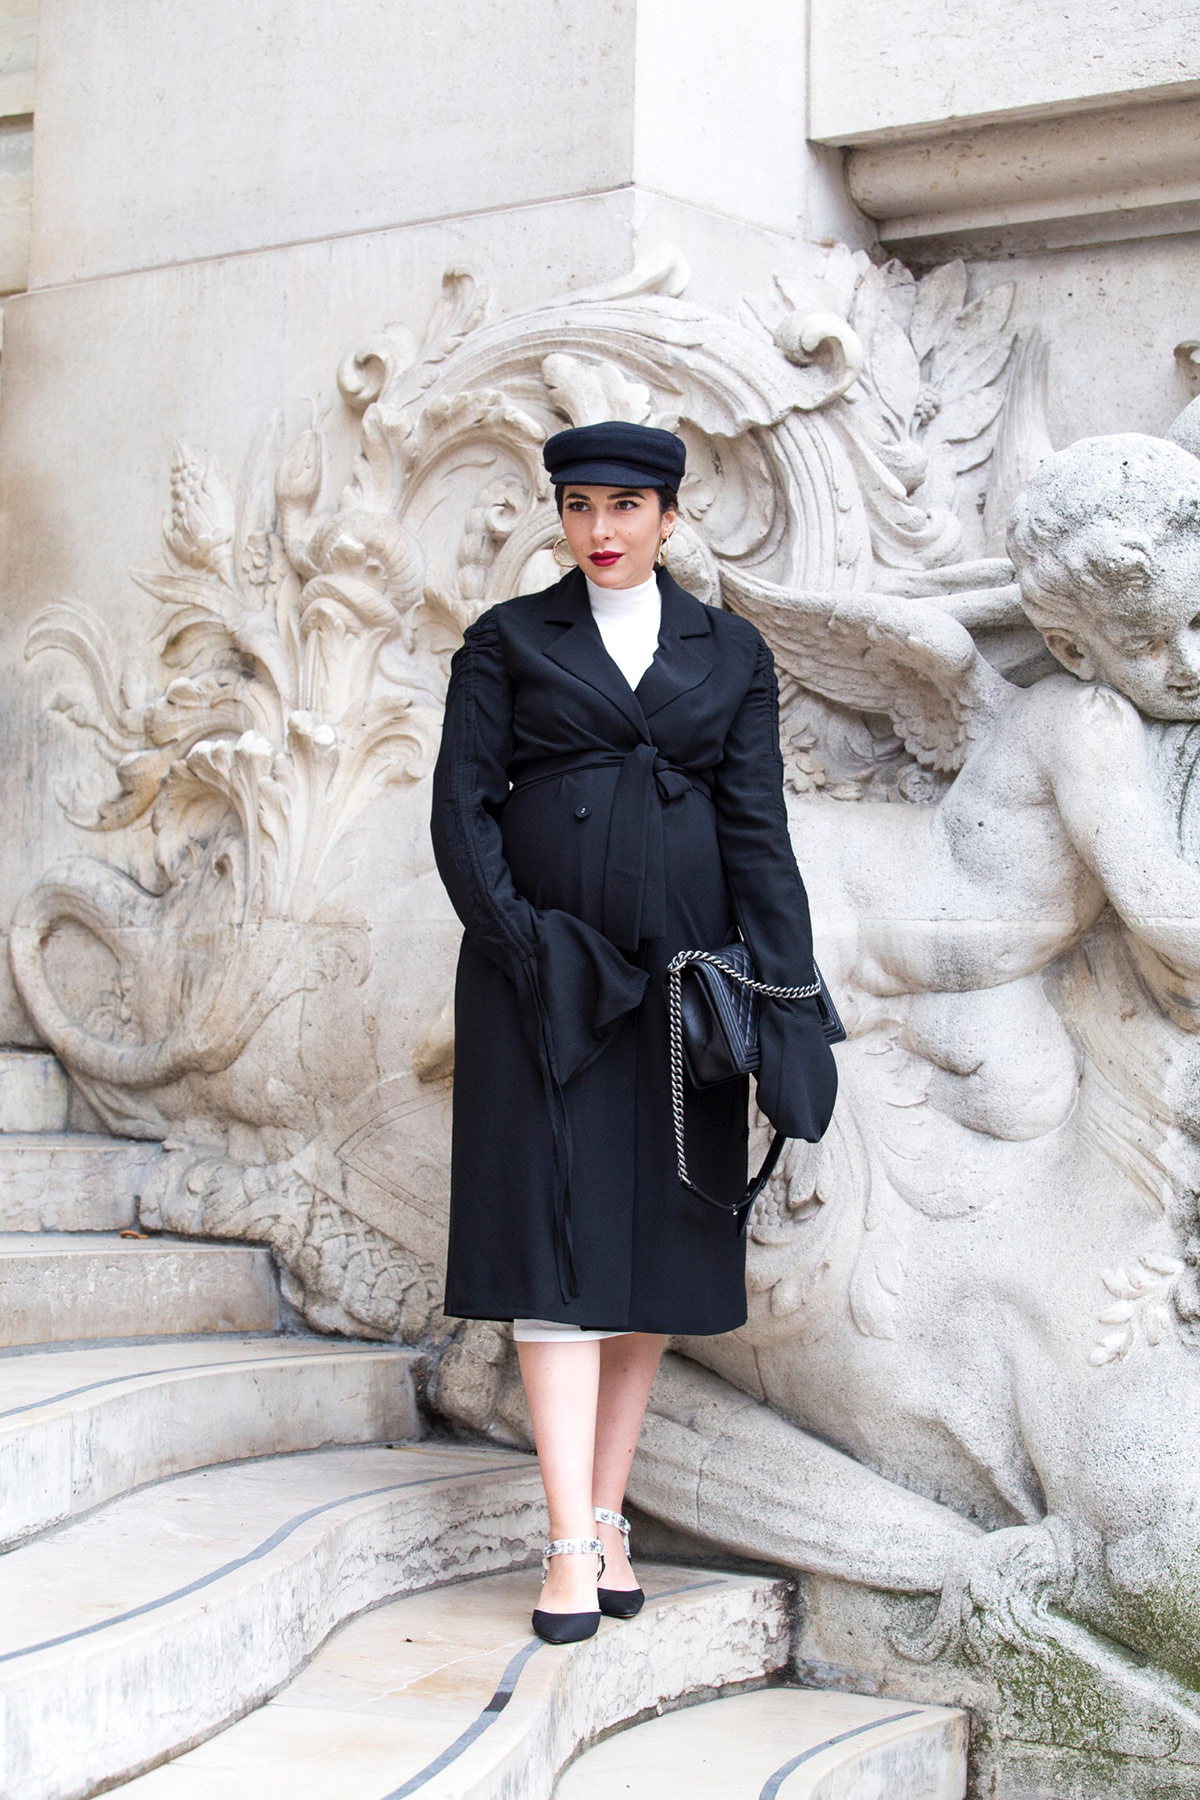 Black trench dress and baker boy hat for John Galliano Show during PFW Paris Fashion Week by Stella Asteria - Fashion & Lifestyle Blogger - Paris Fashion Week Street Style